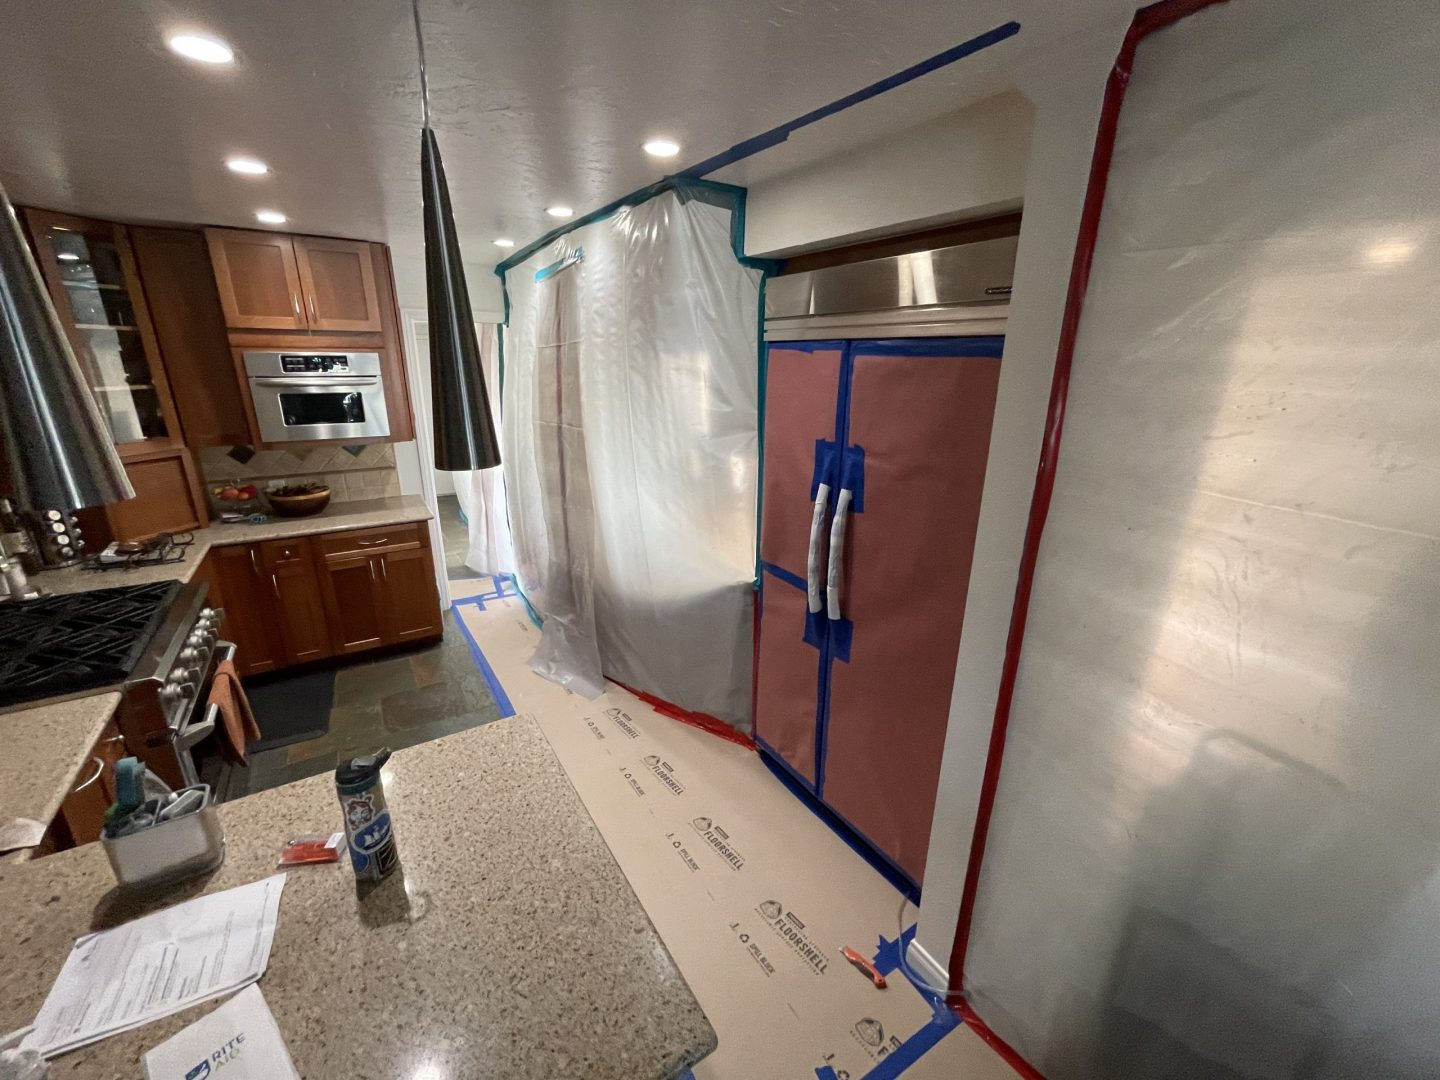 The Top 5 Reasons of Water Damage to Your Home